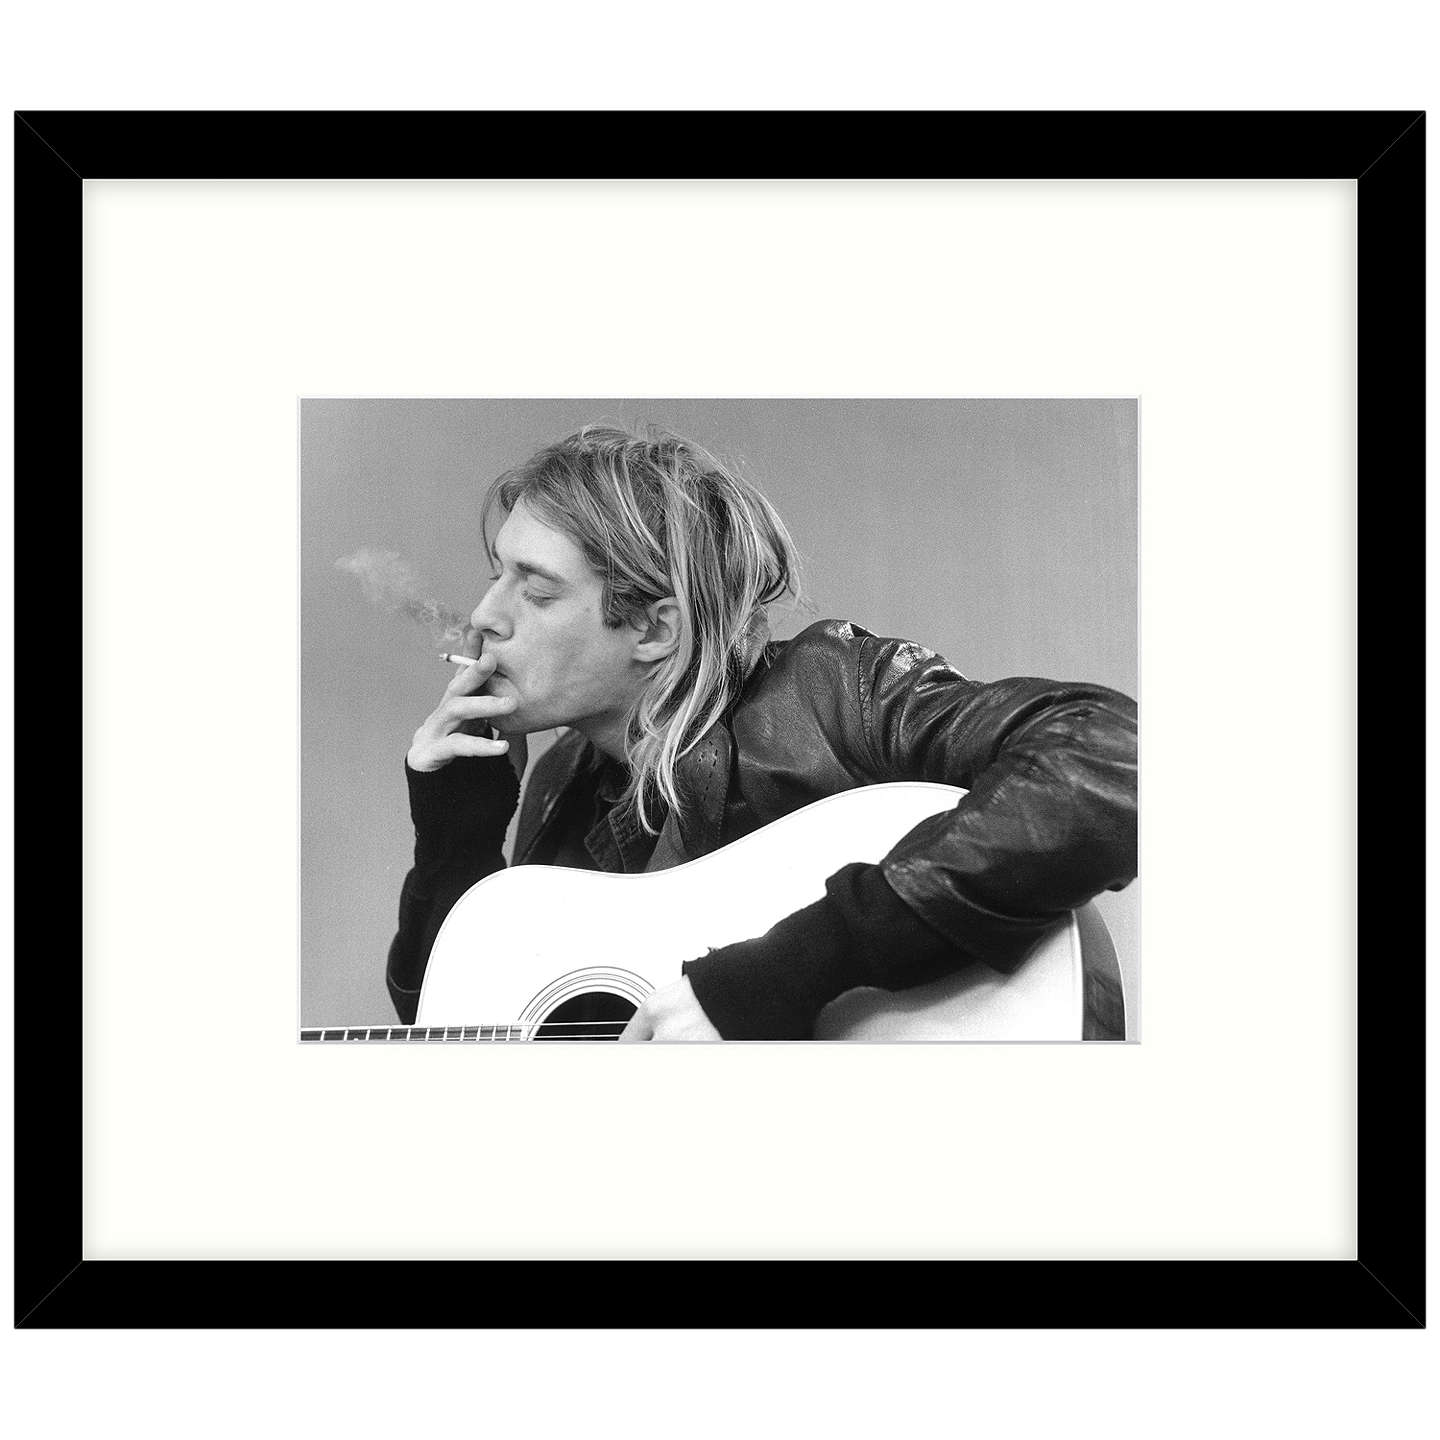 BuyGetty Images Gallery - Kurt Cobain & Nirvana 1991 Framed Print, 57 x 49cm Online at johnlewis.com